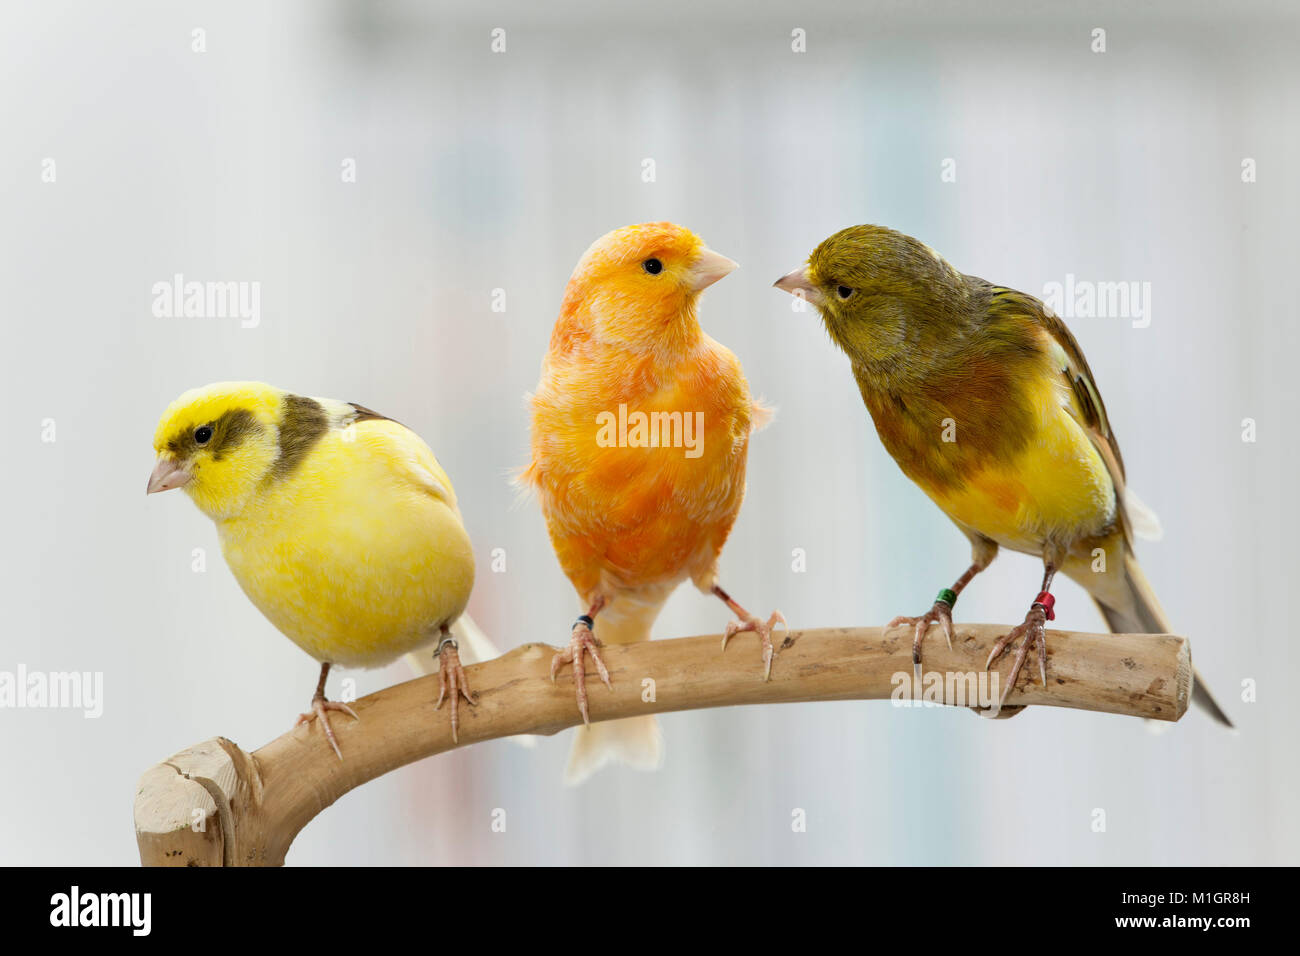 Domestic canary. Three birds of different colour perched on a twig. Germany - Stock Image